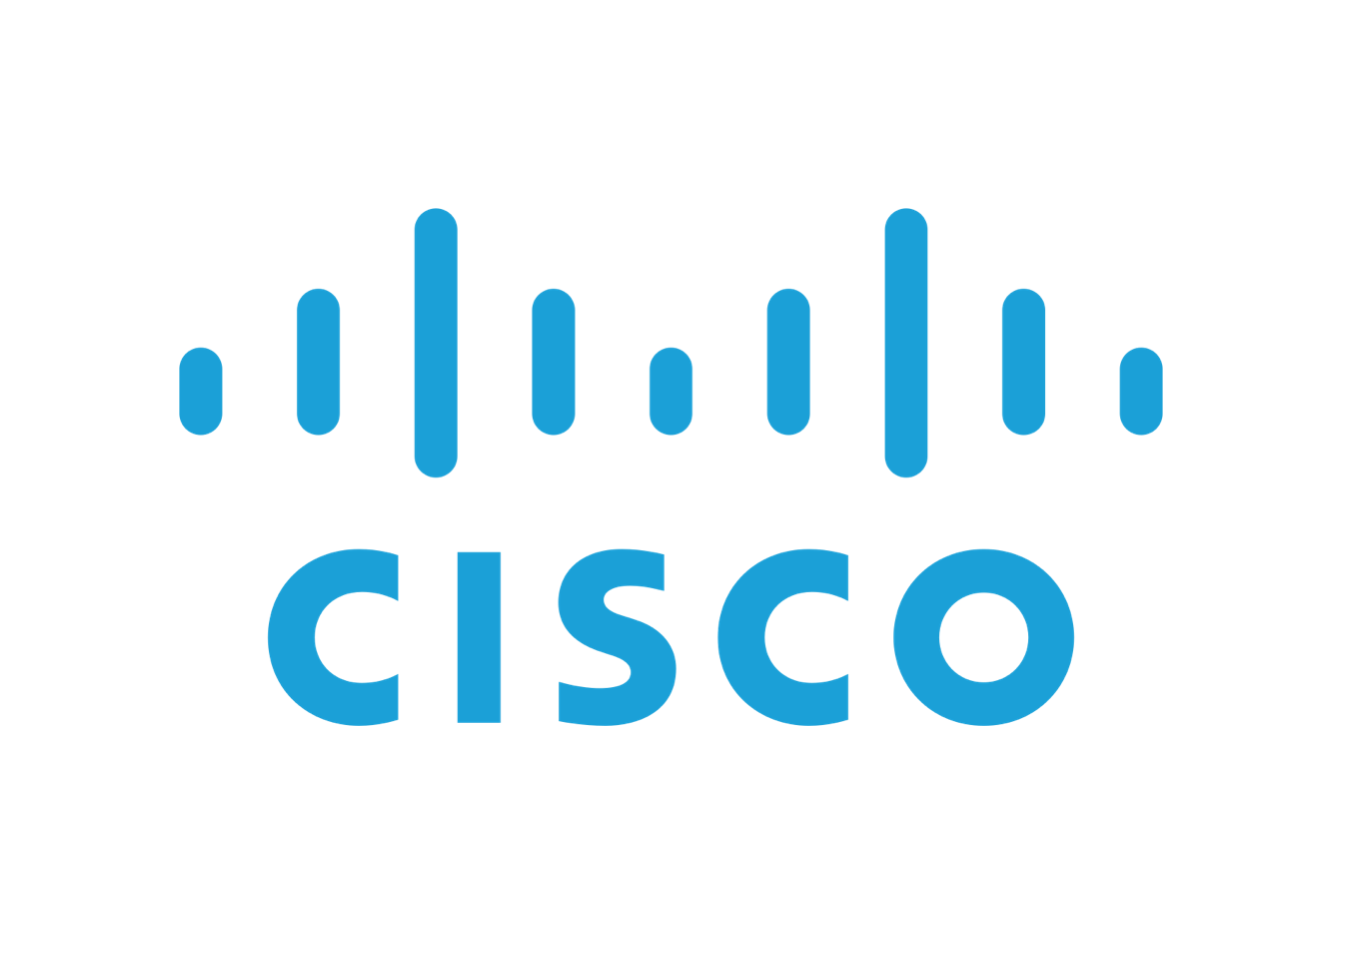 New contract with Cisco commenced 1 August 2017